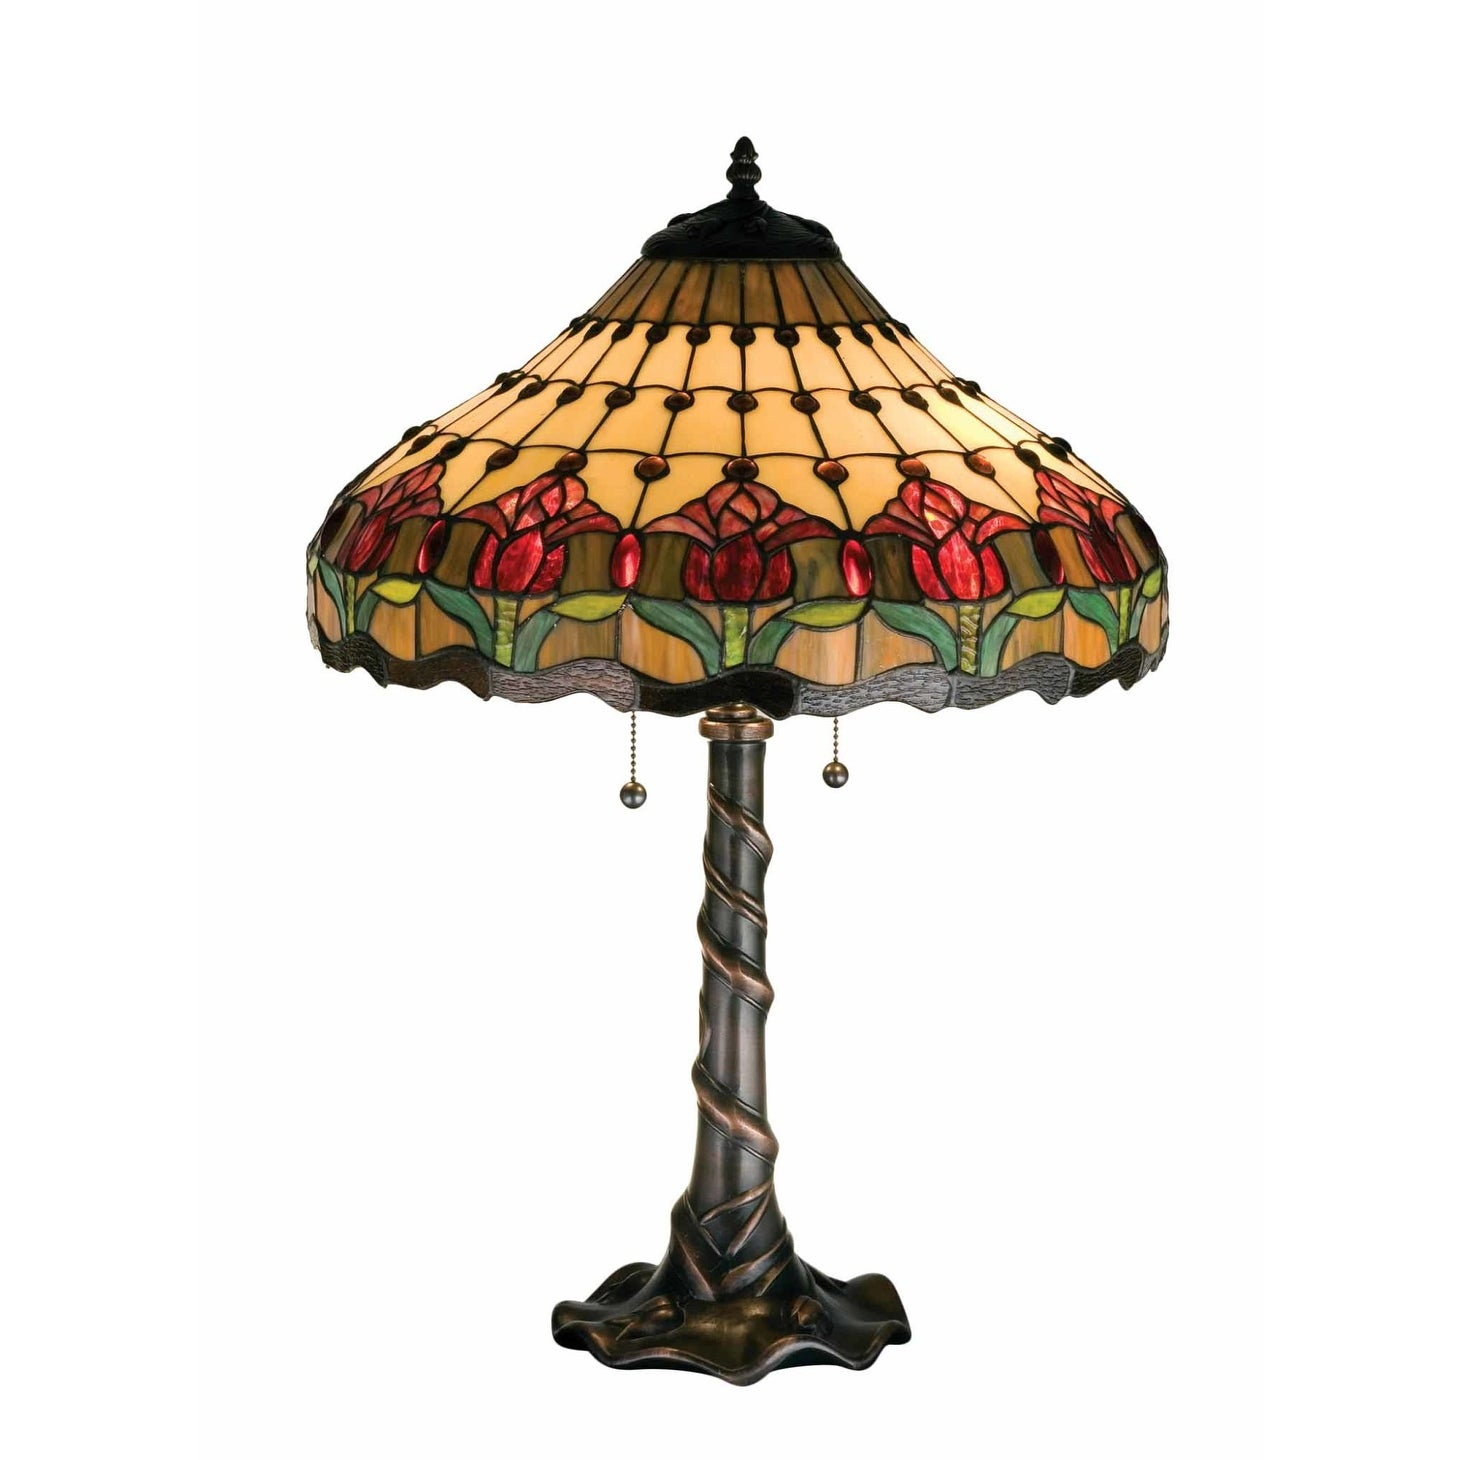 Shop Meyda Tiffany Stained Glass Tiffany Table Lamp from the